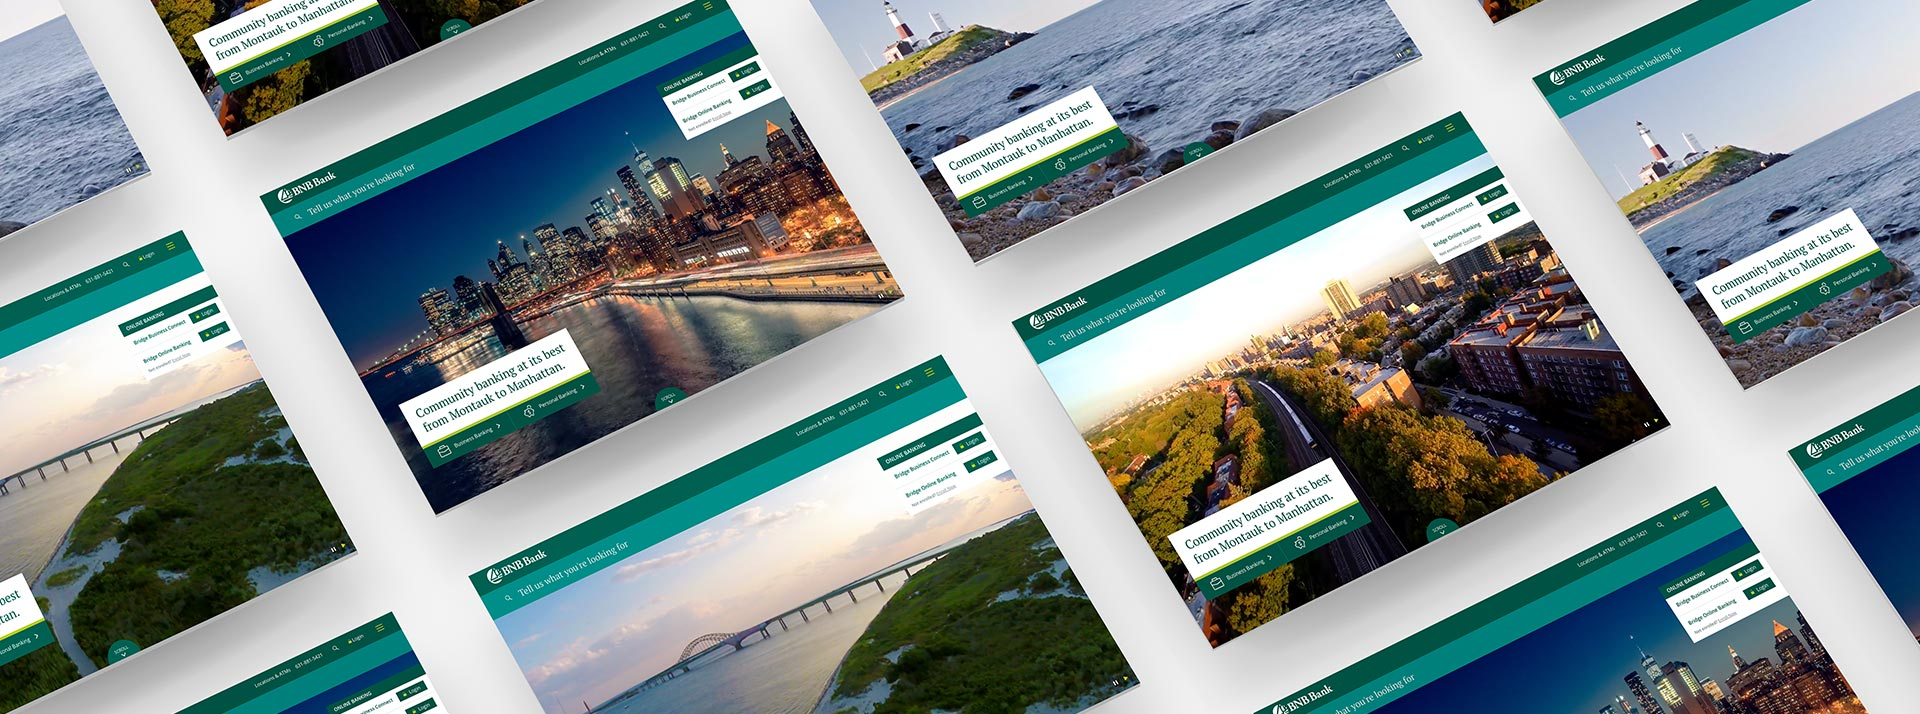 BNB Bank homepage screens showing location for Manhattan, Suffolk County, Nassau County and Queens